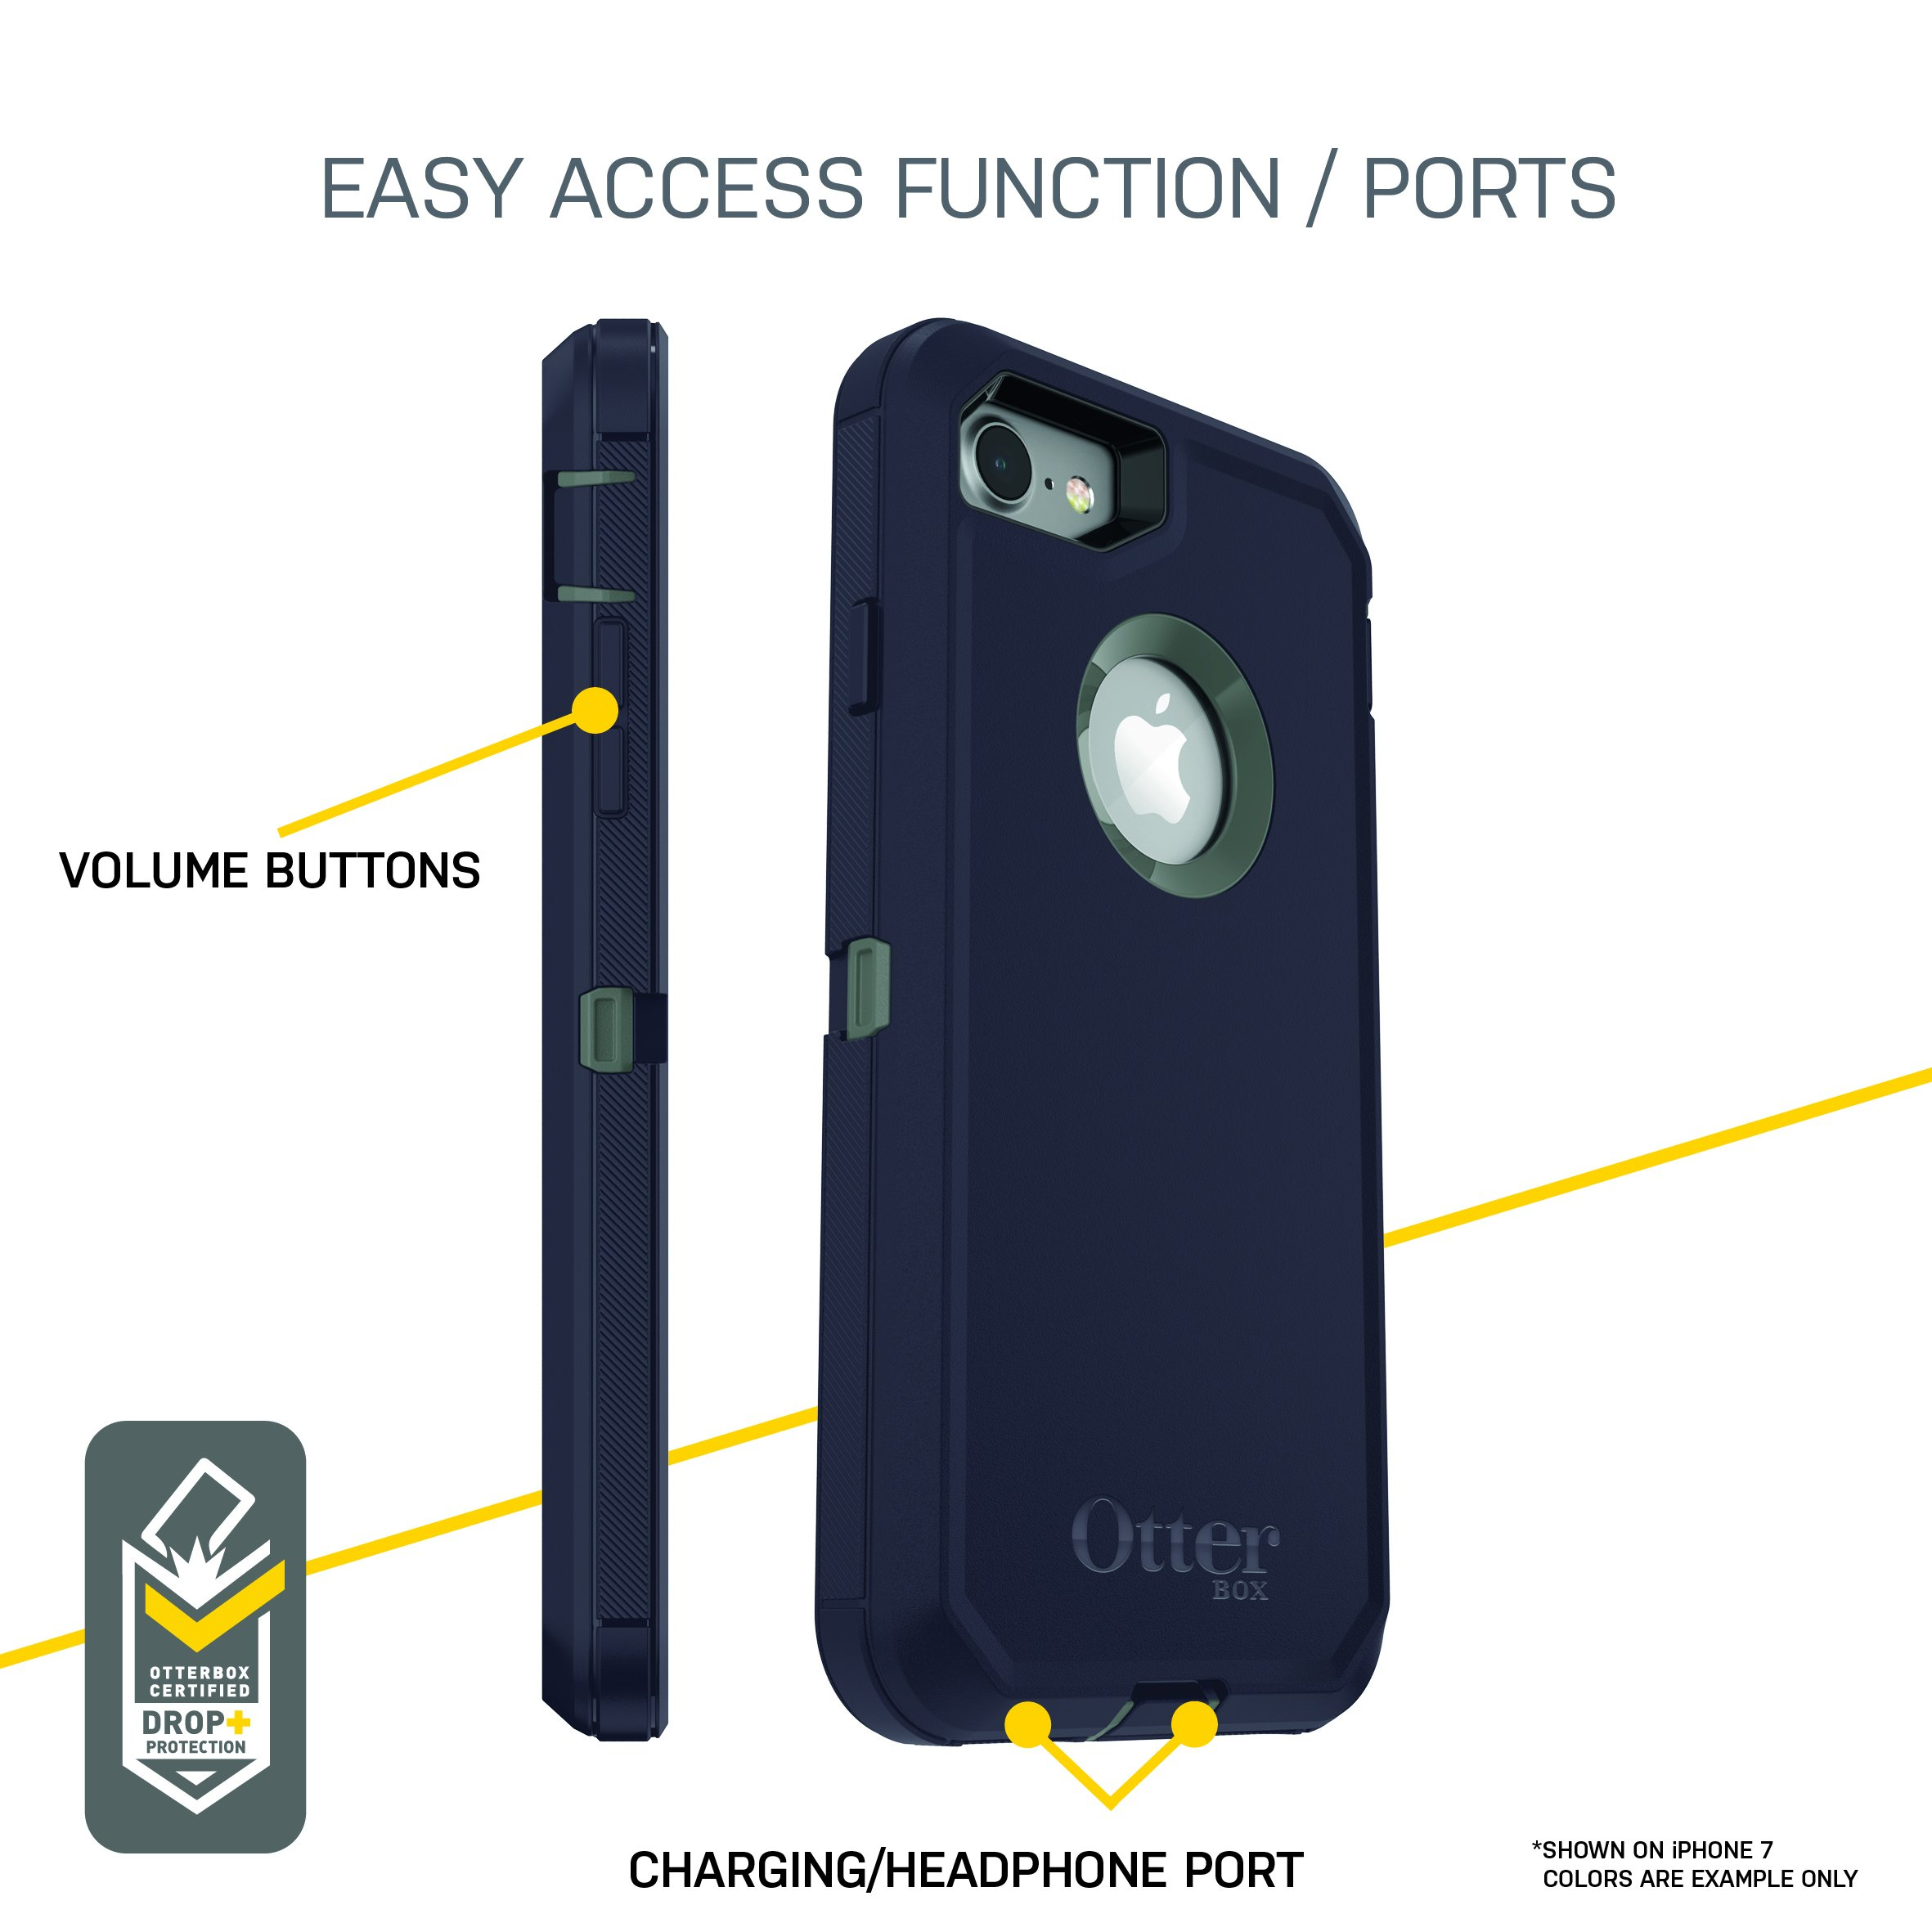 OtterBox DEFENDER SERIES Case for iPhone 8 & iPhone 7 (NOT Plus) - Frustration Free Packaging - PURPLE NEBULA (WINSOME ORCHID/NIGHT PURPLE) by OtterBox (Image #6)